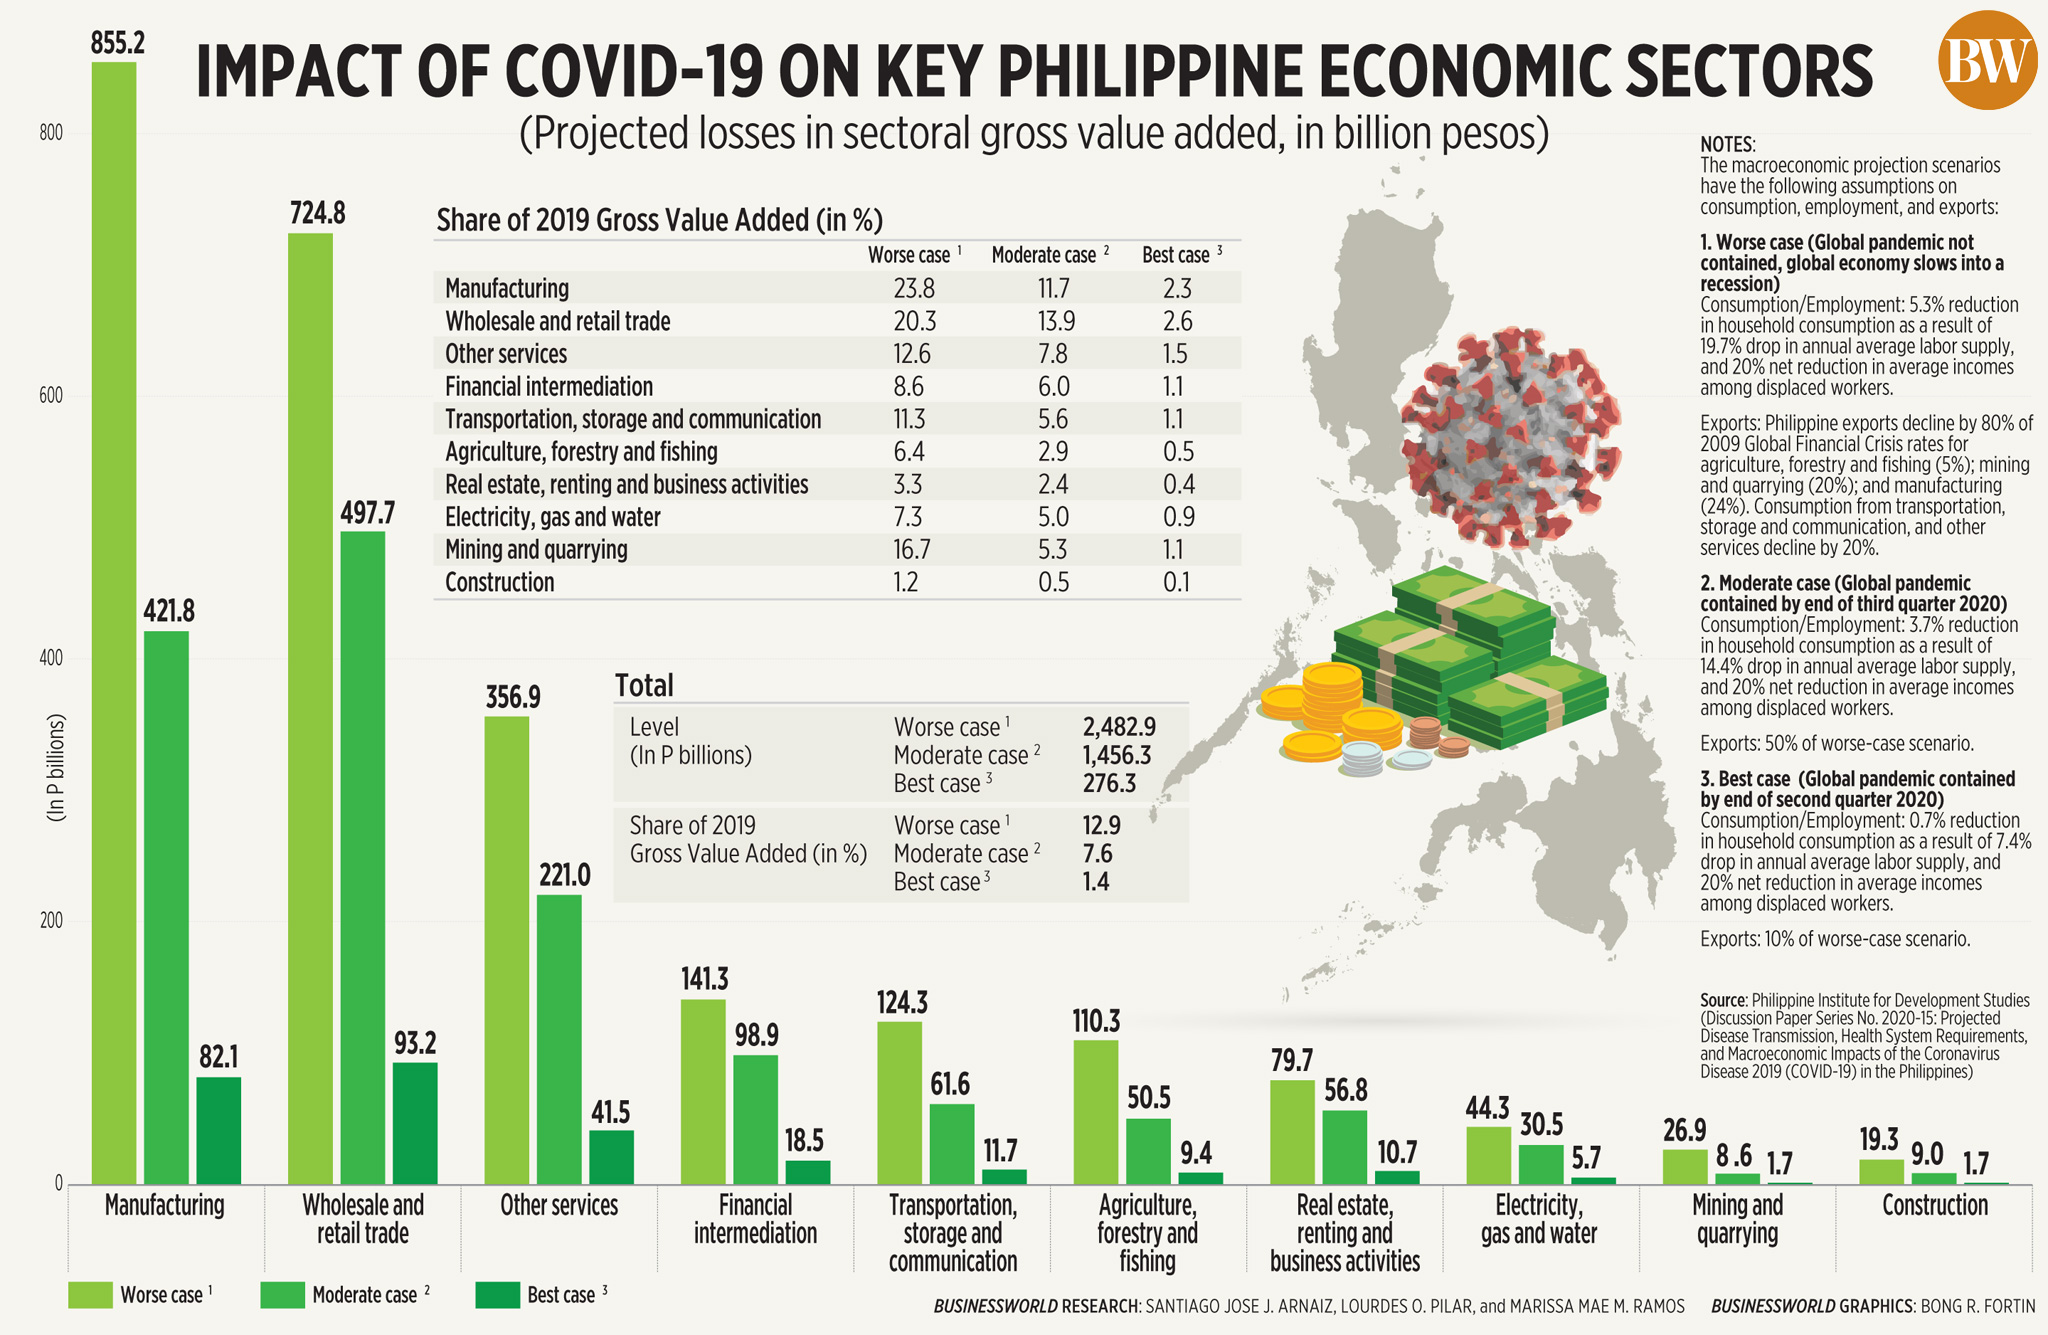 Impact of COVID-19 on key Philippine economic sectors